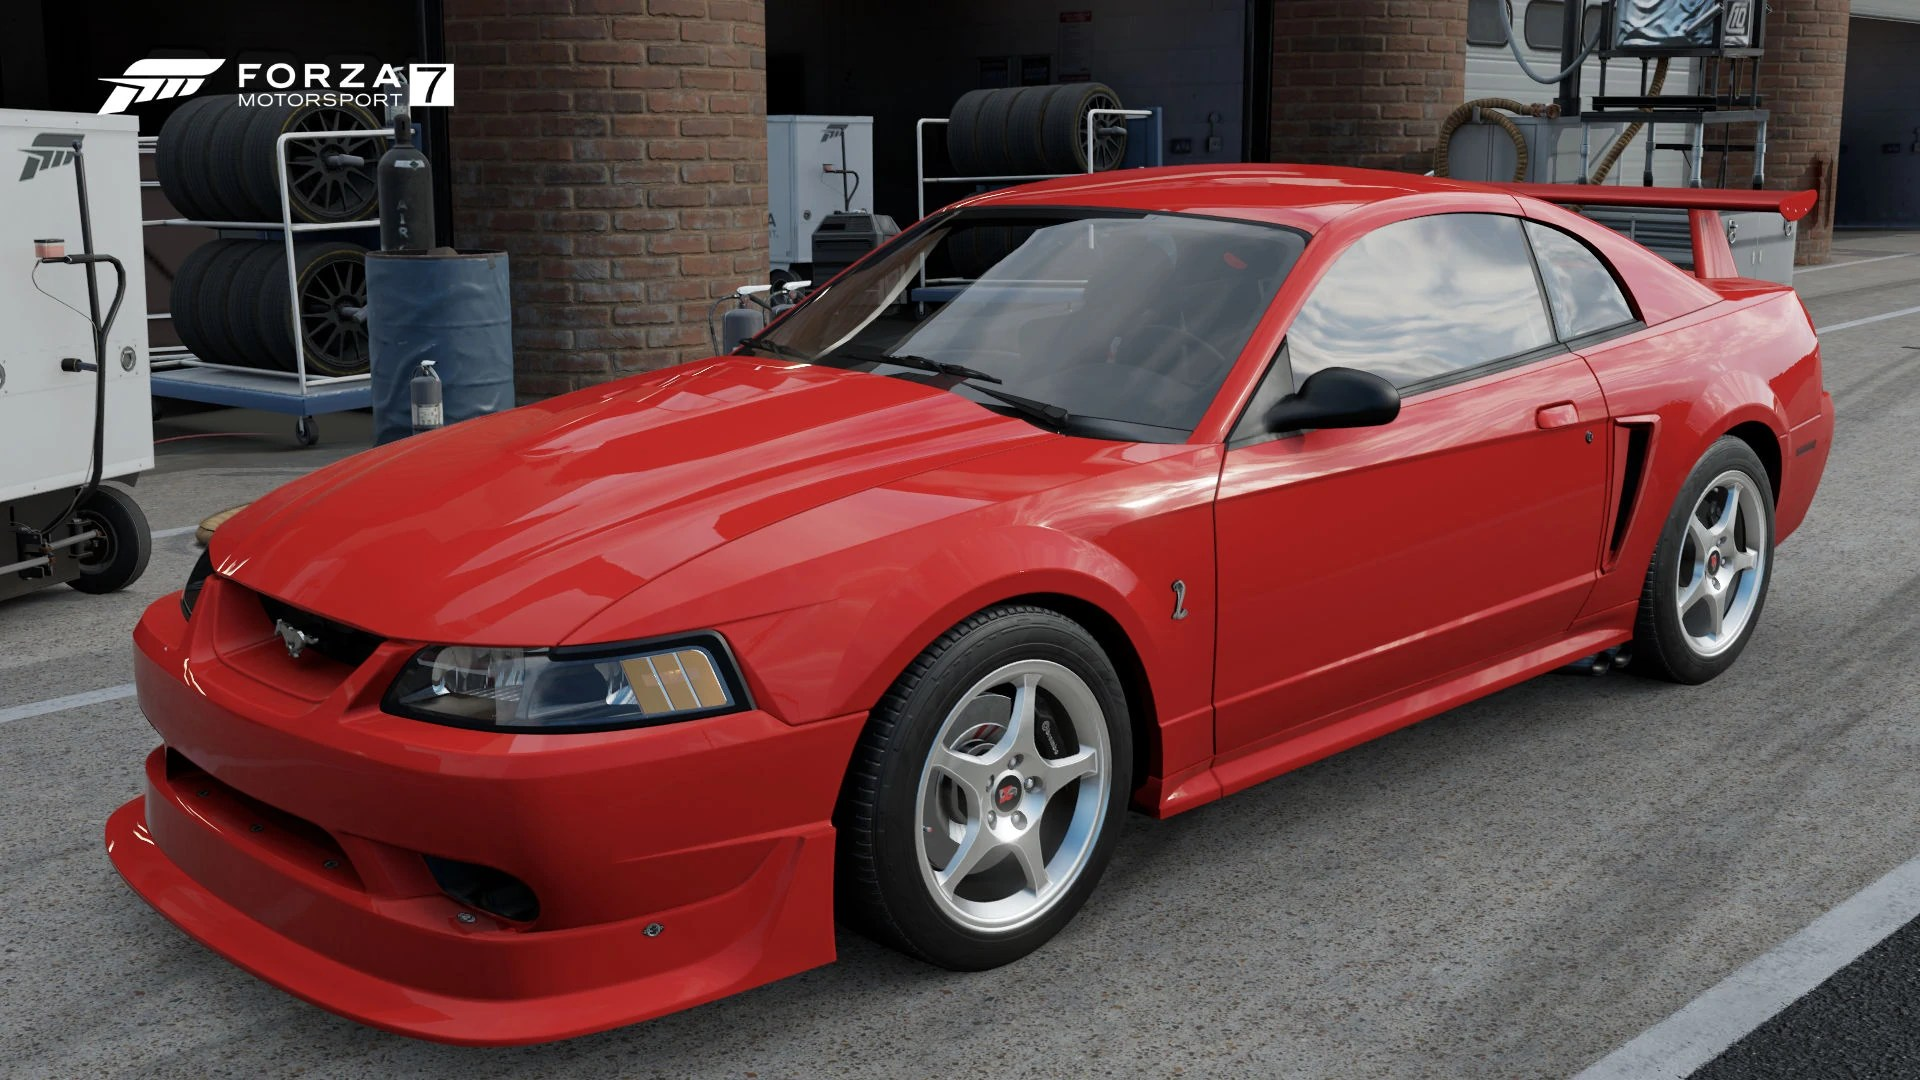 hight resolution of 2000 ford svt cobra r in forza horizon 3